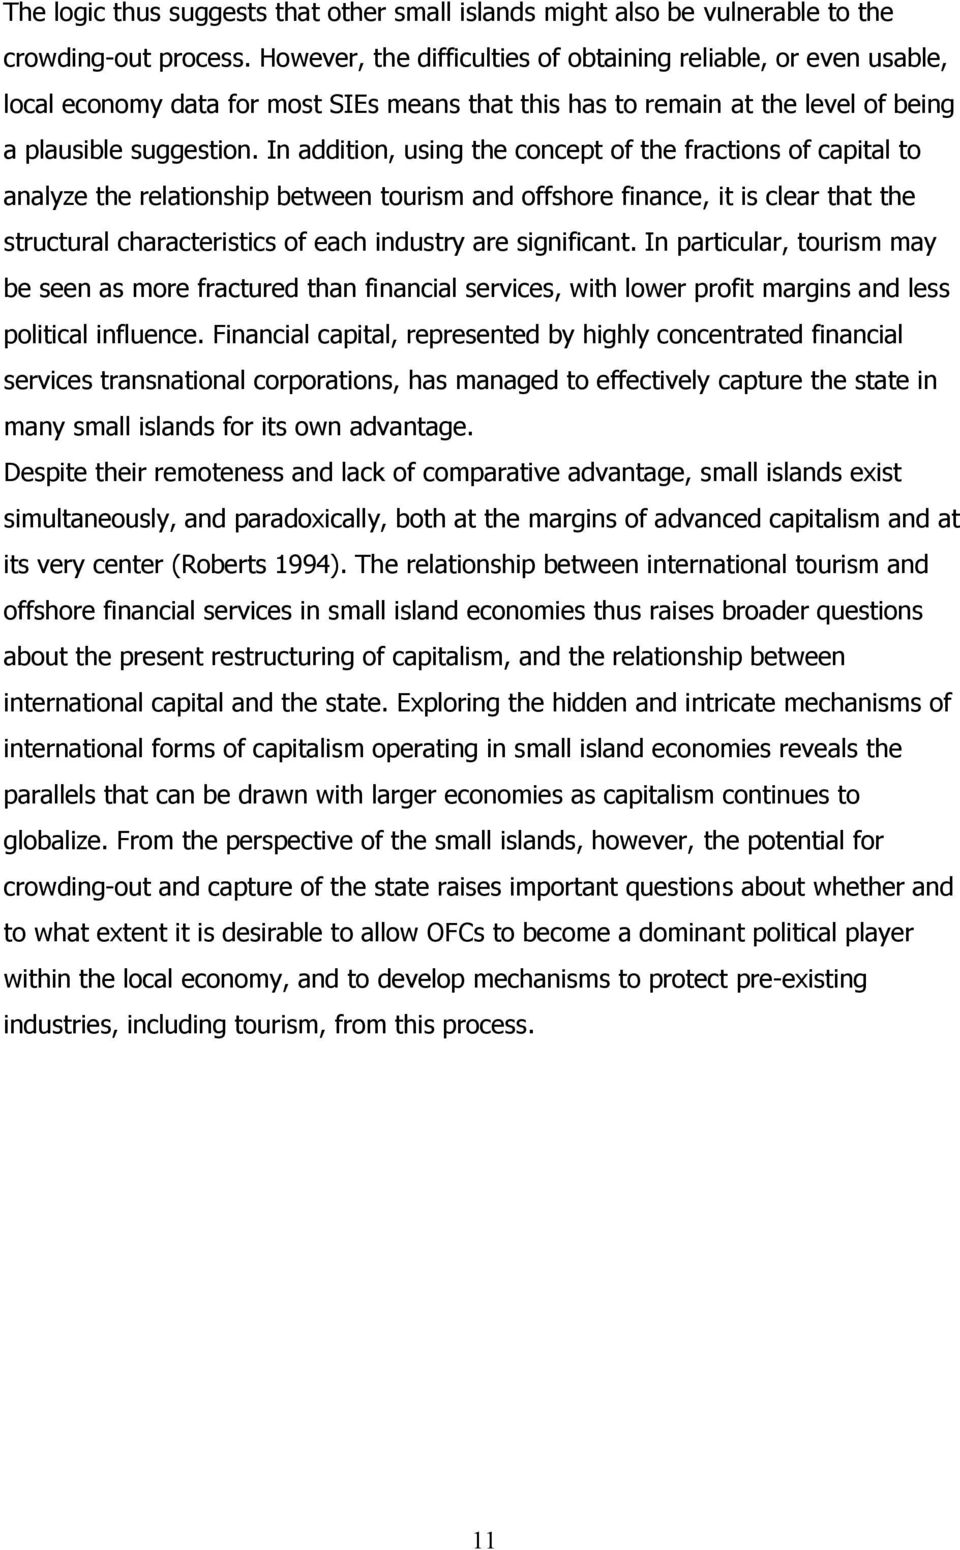 In addition, using the concept of the fractions of capital to analyze the relationship between tourism and offshore finance, it is clear that the structural characteristics of each industry are